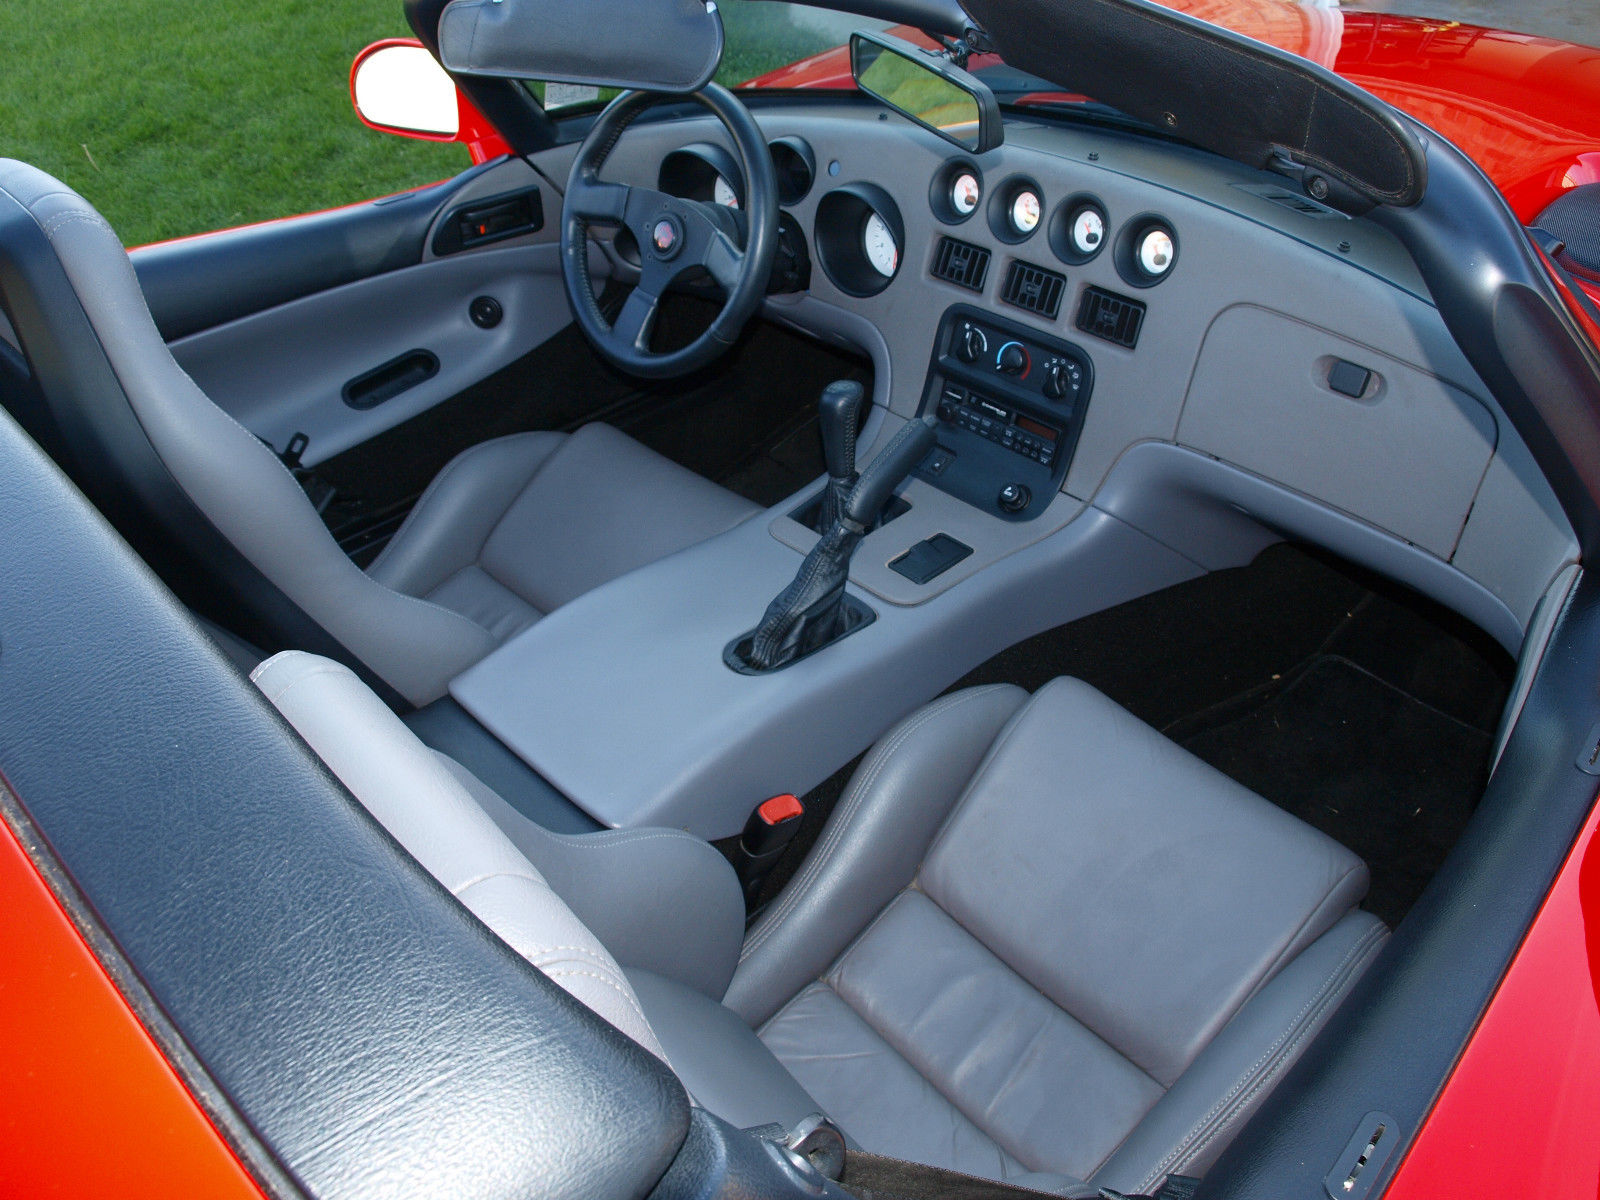 1994 Viper With 504 Miles On Ebay Mopar Blog